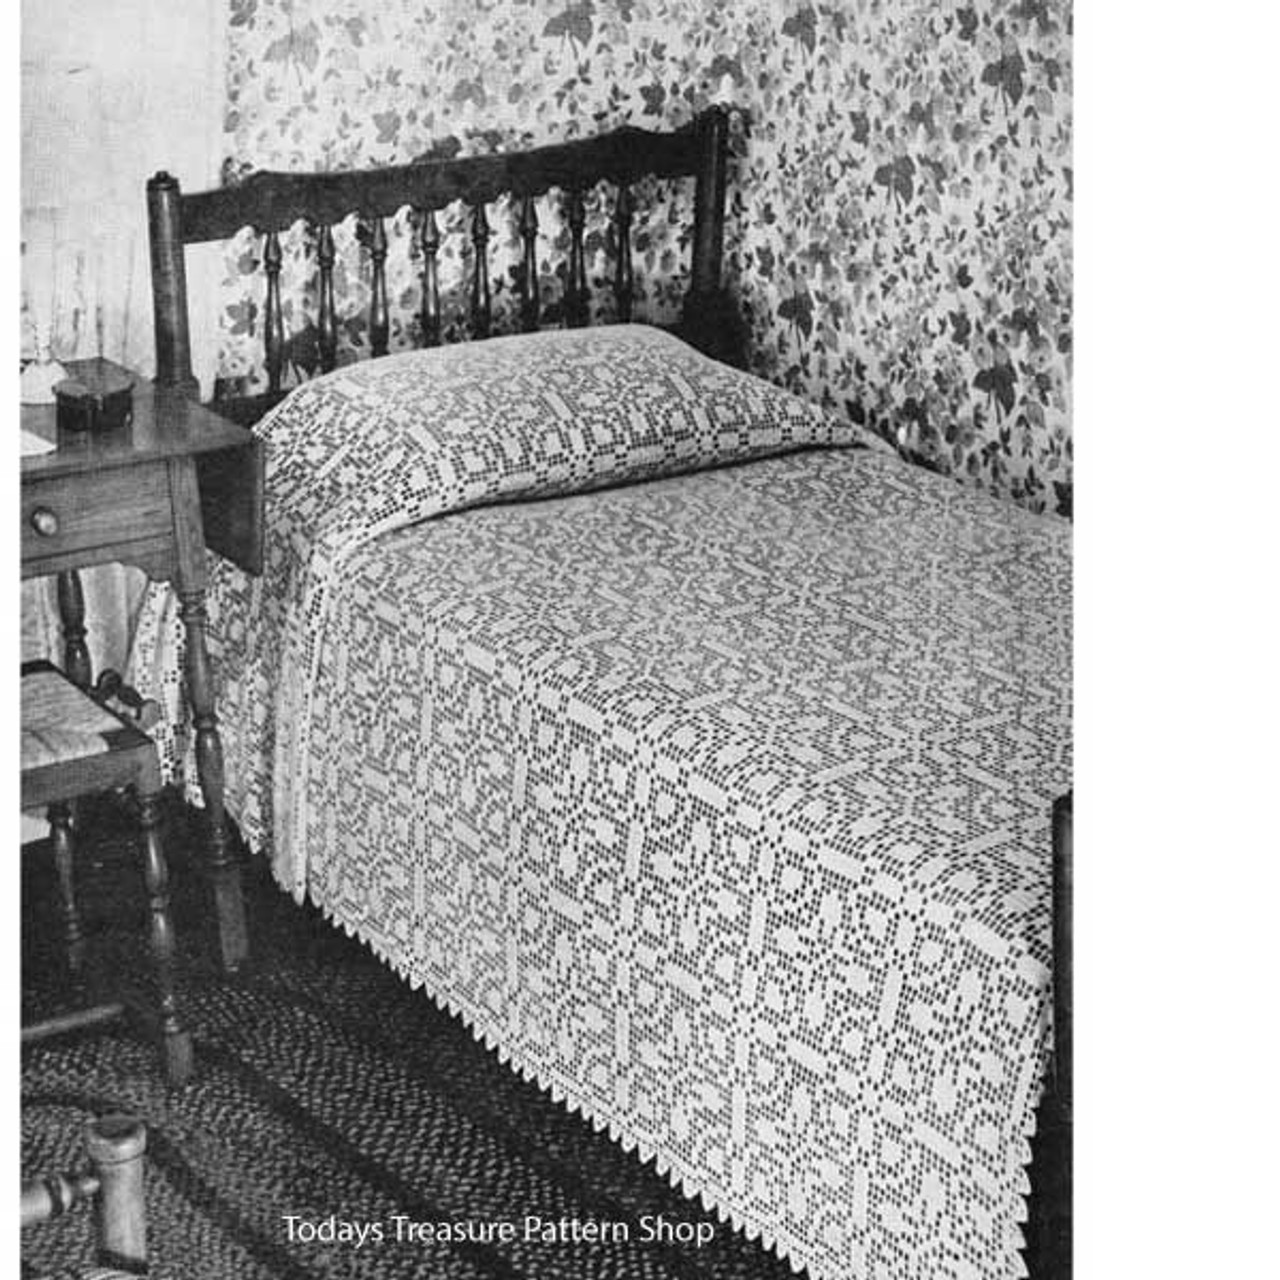 Vintage Farmhouse Filet Crochet Bedspread Pattern